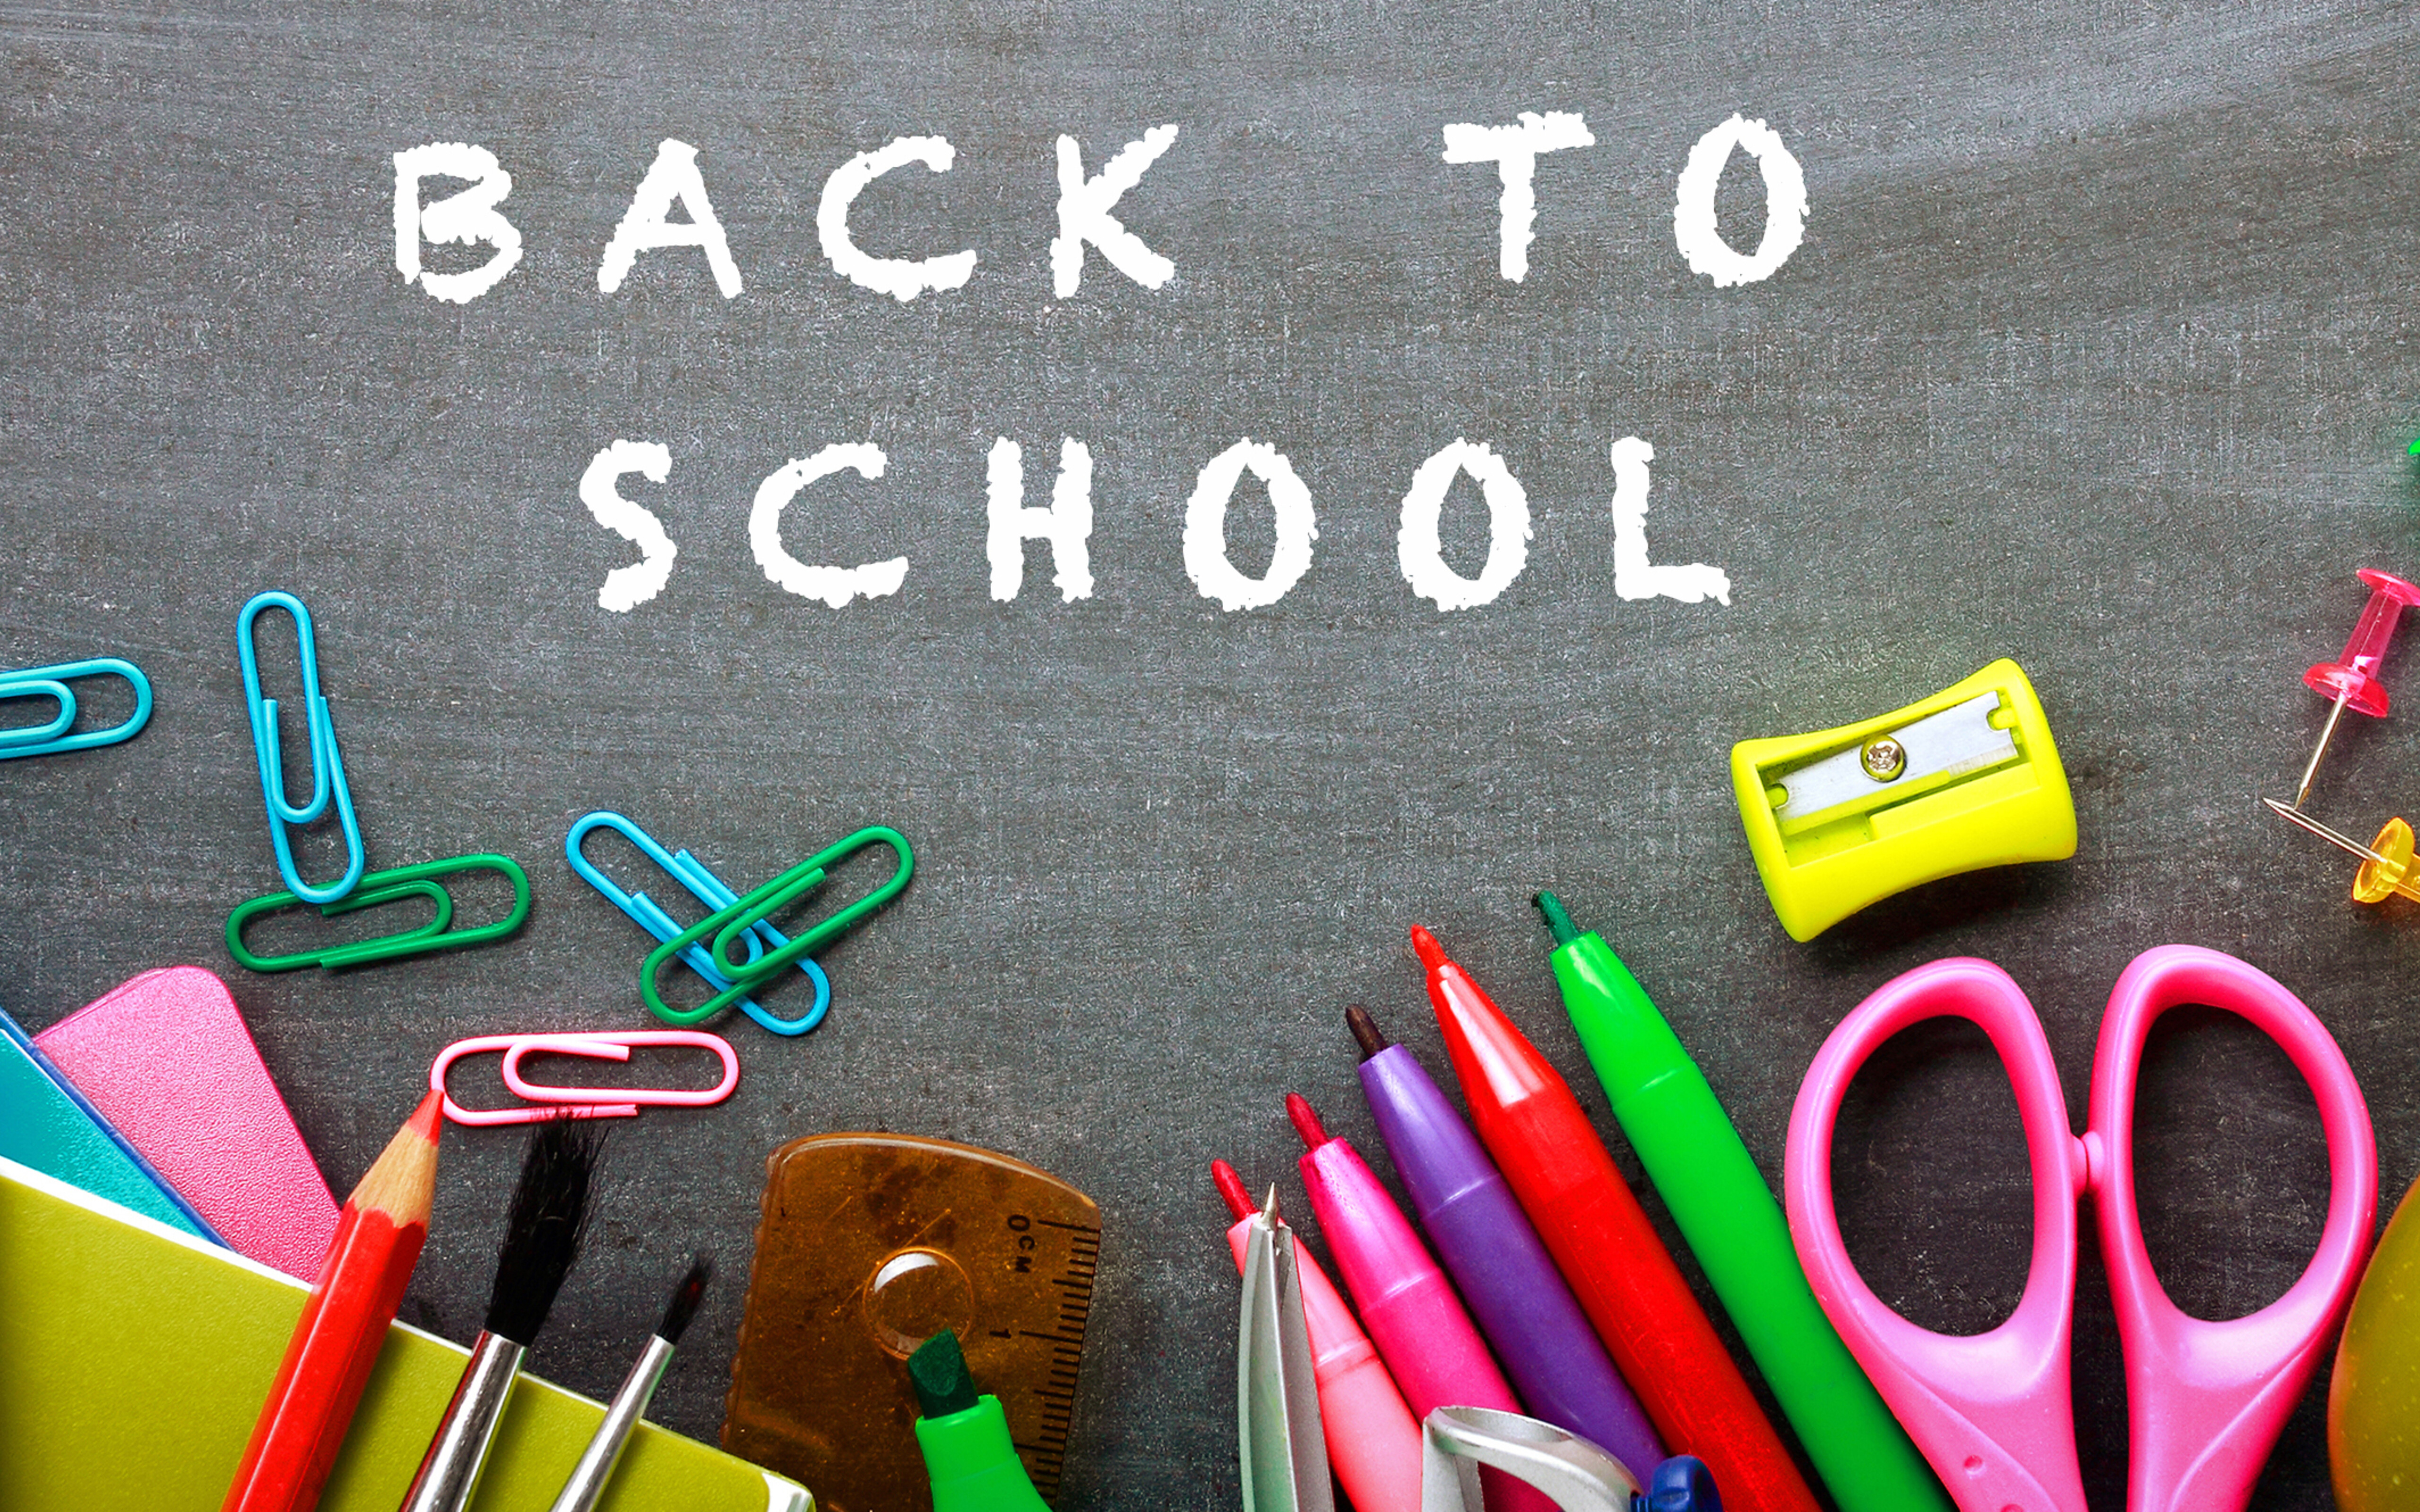 Crayons and stuffs for school   HD wallpaper 5120x3200